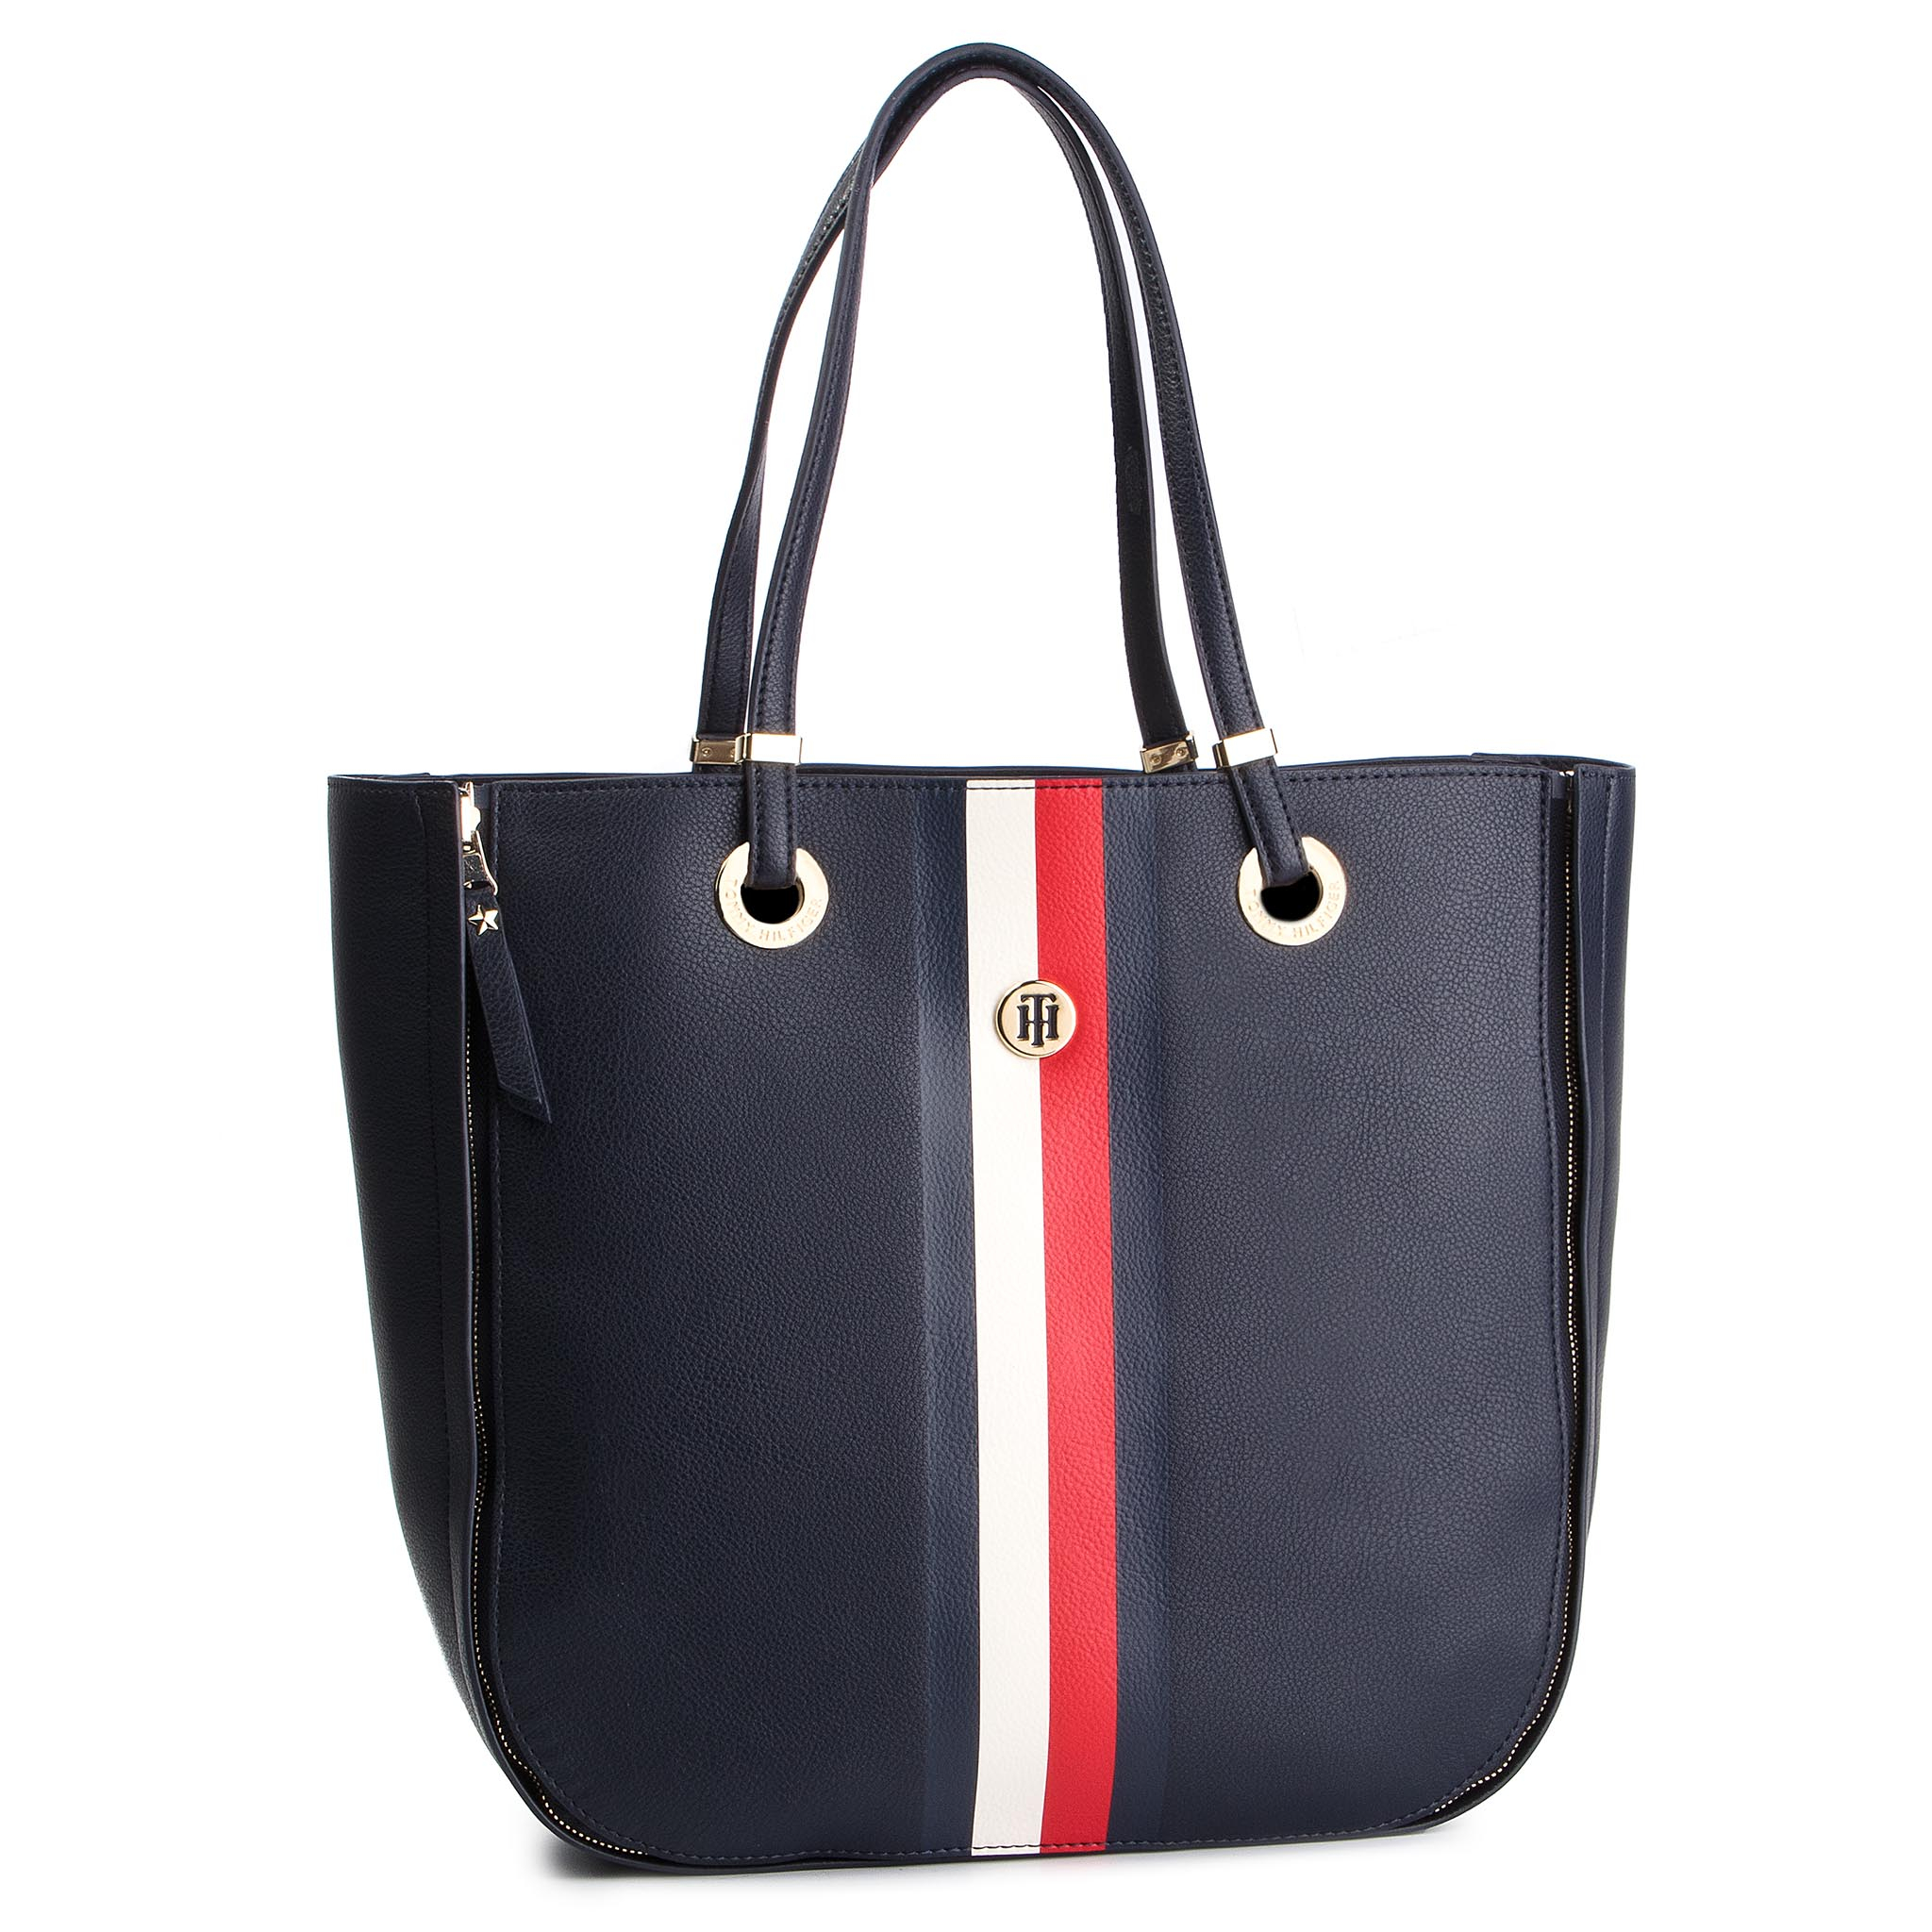 84cc005925 Kabelka TOMMY HILFIGER - My Tommy Tote AW0AW006621 901